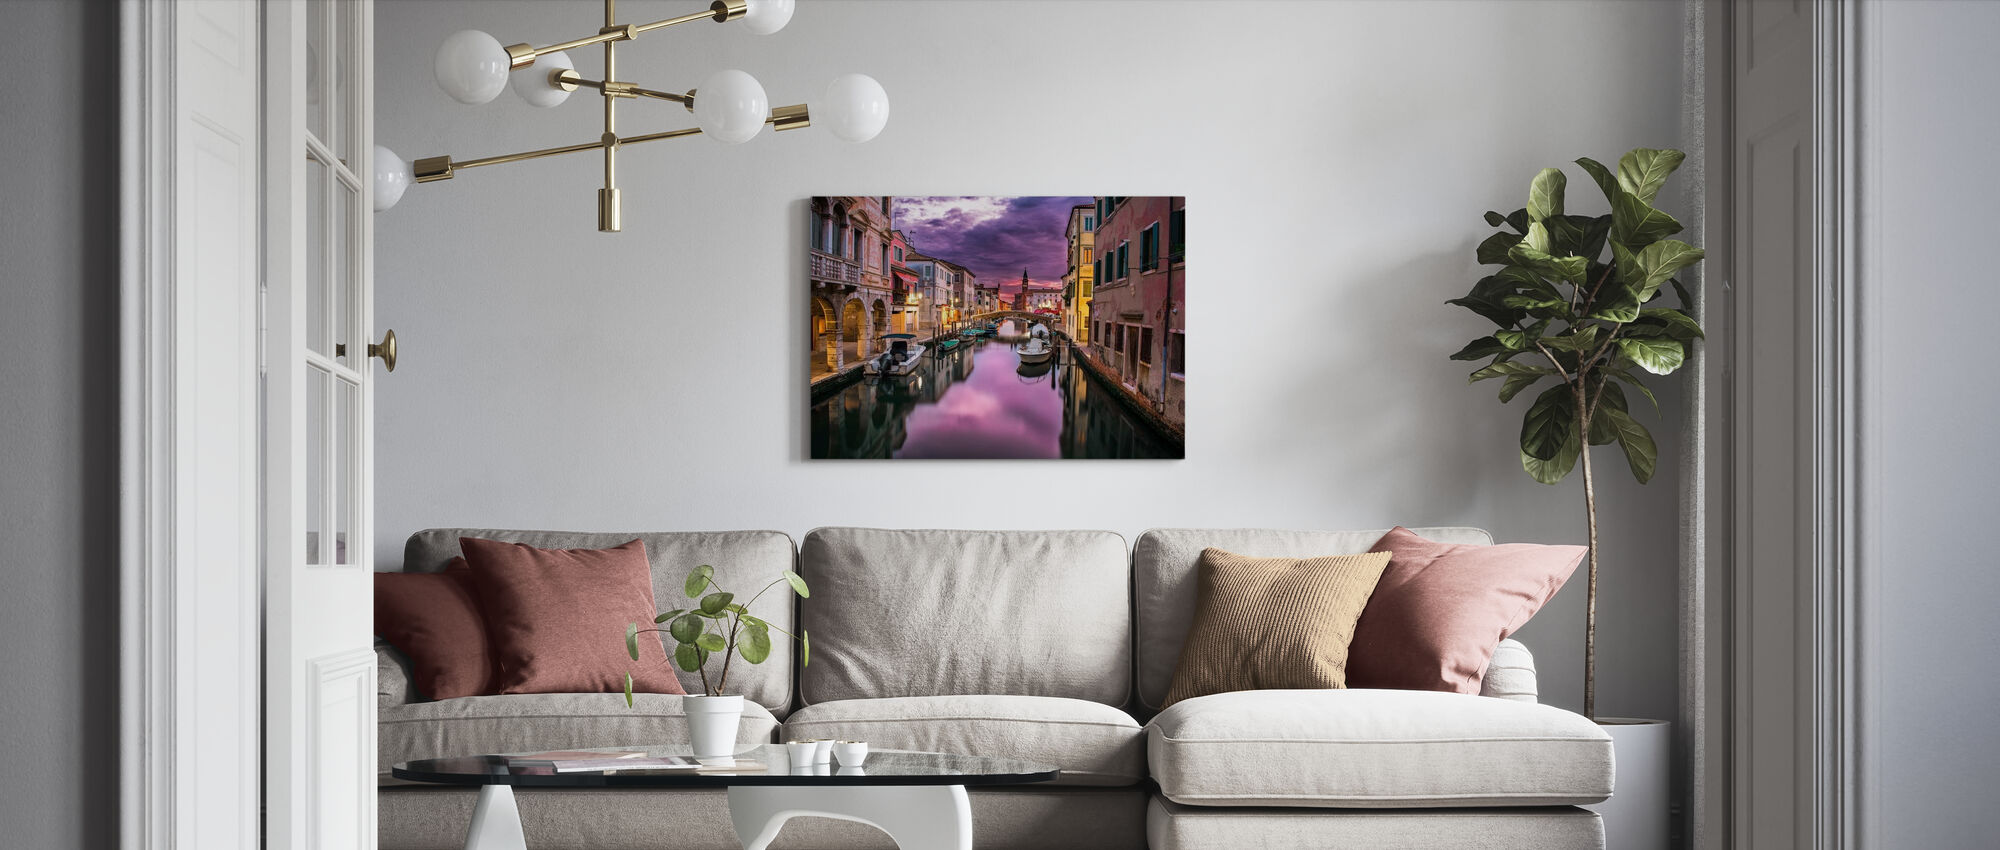 Canal in Venice - Canvas print - Living Room